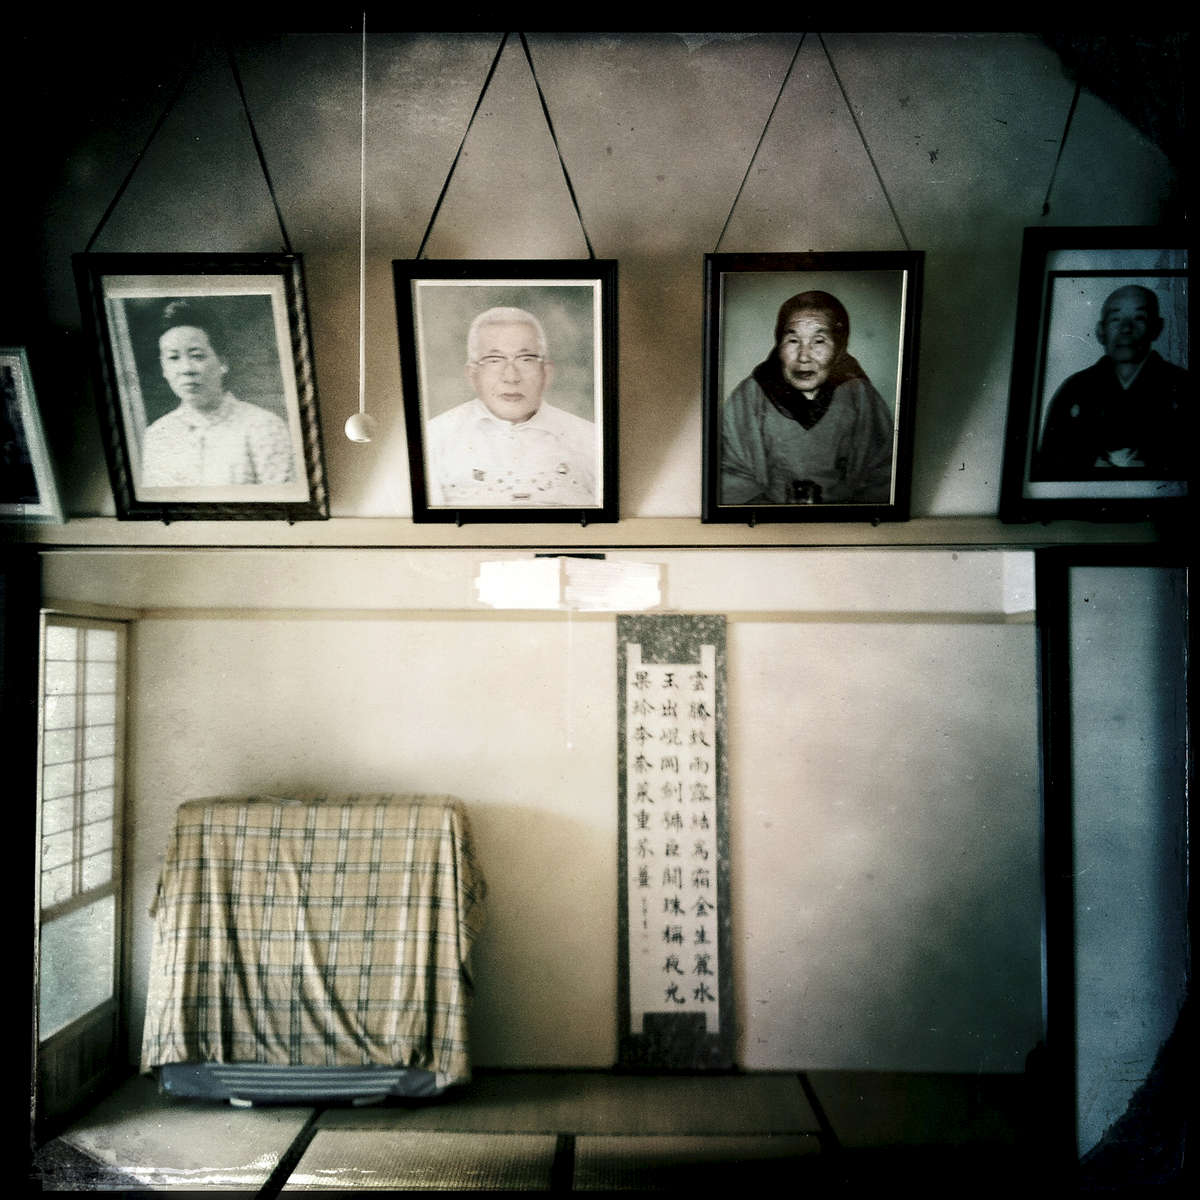 The ancestor portraits of the Sanpei family at their house, now virtually no return due to radiation. Feb/ 2013, Tsushima, Namie.